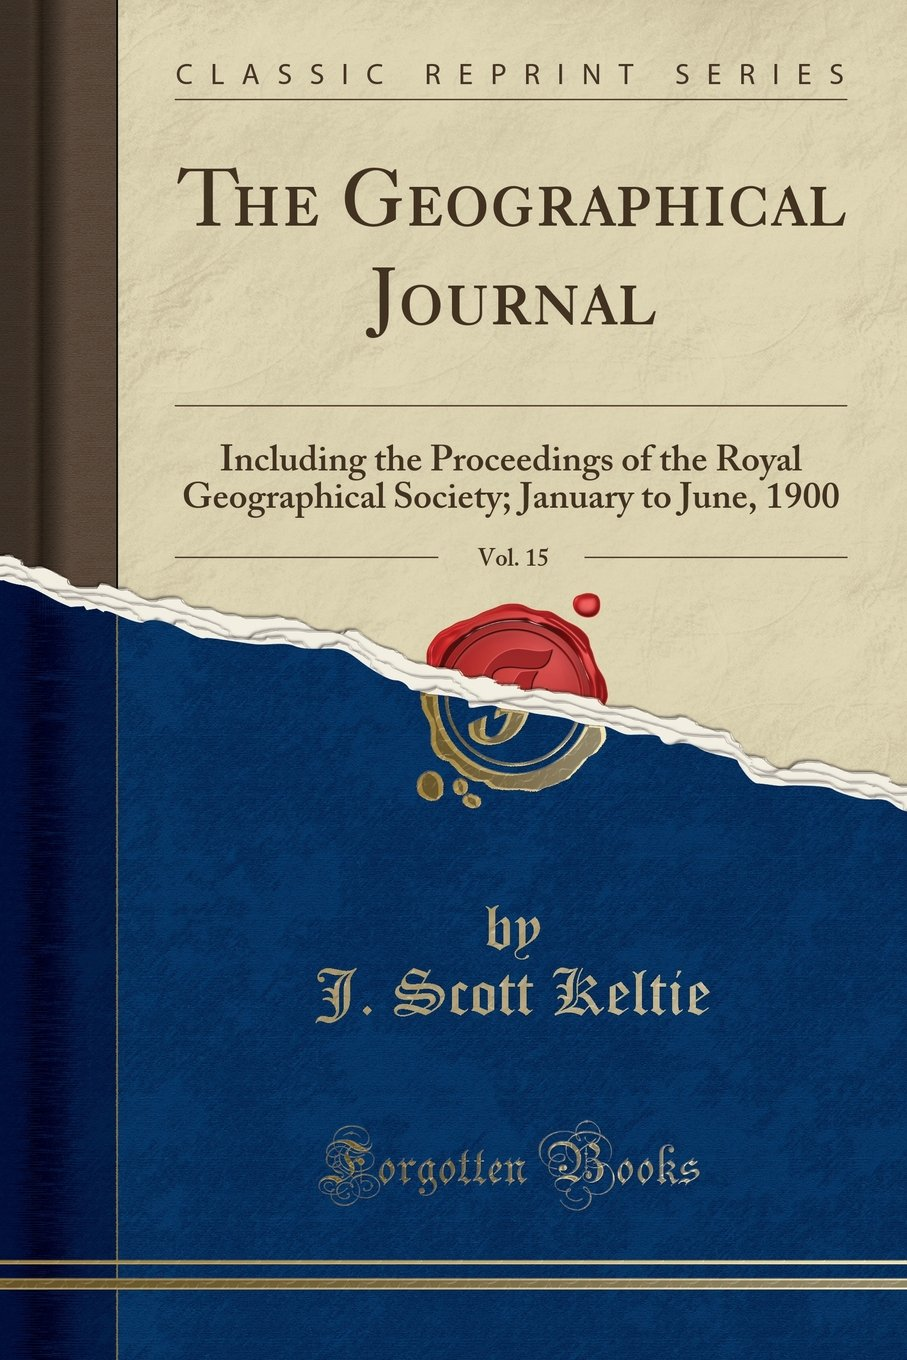 Download The Geographical Journal, Vol. 15: Including the Proceedings of the Royal Geographical Society; January to June, 1900 (Classic Reprint) ebook